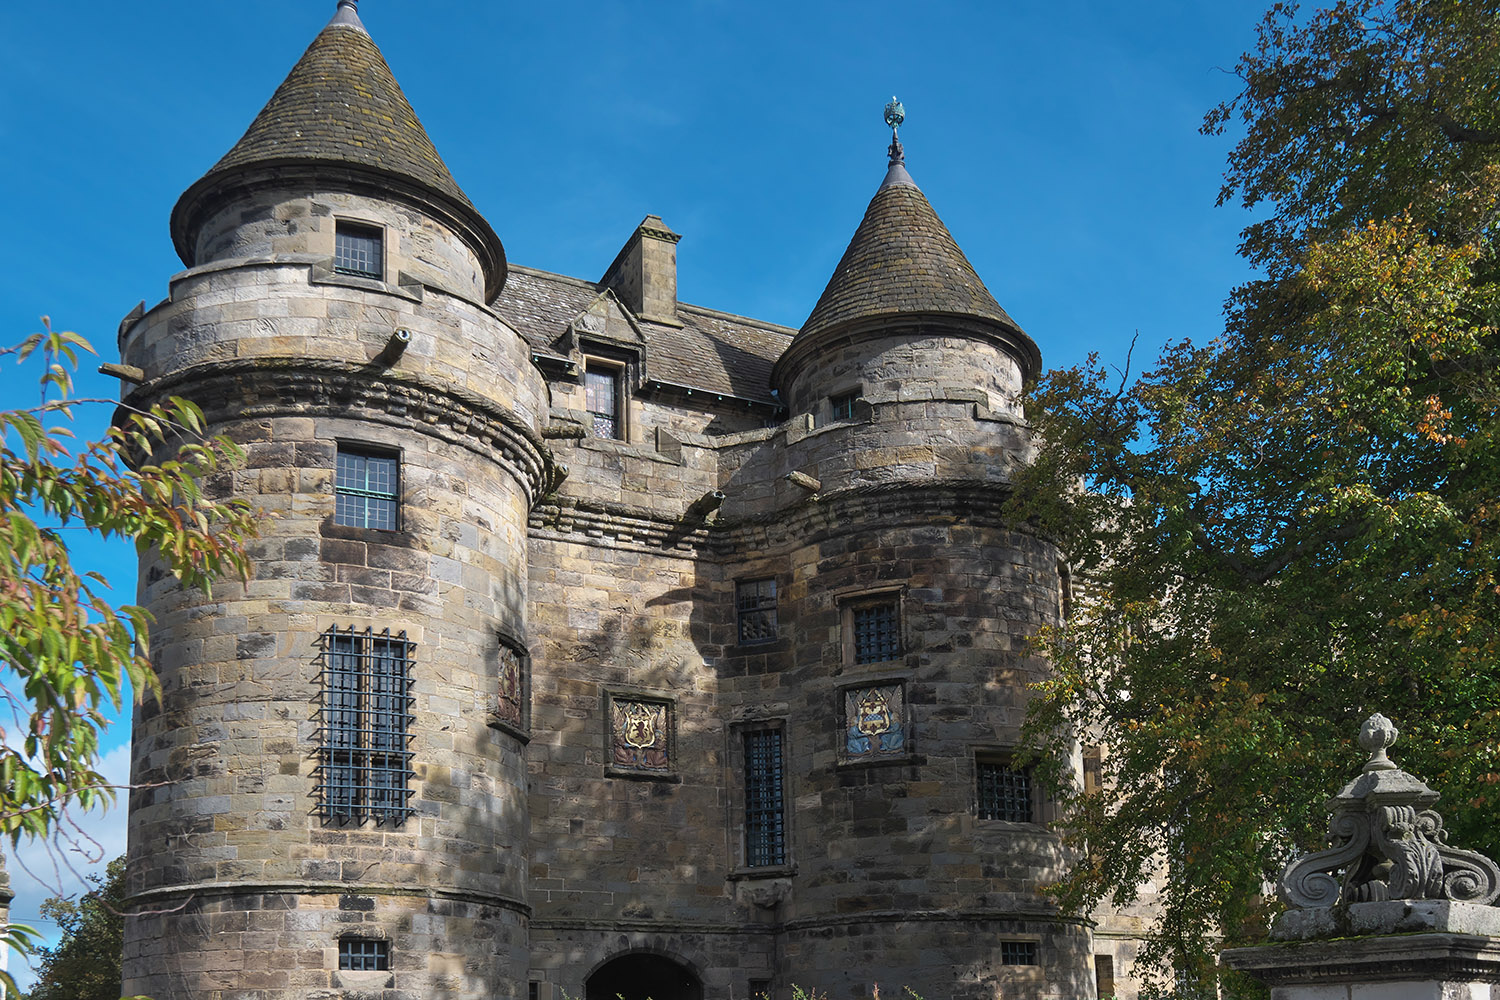 Falkland Palace in Fife features in our Outlander Adventurer tour